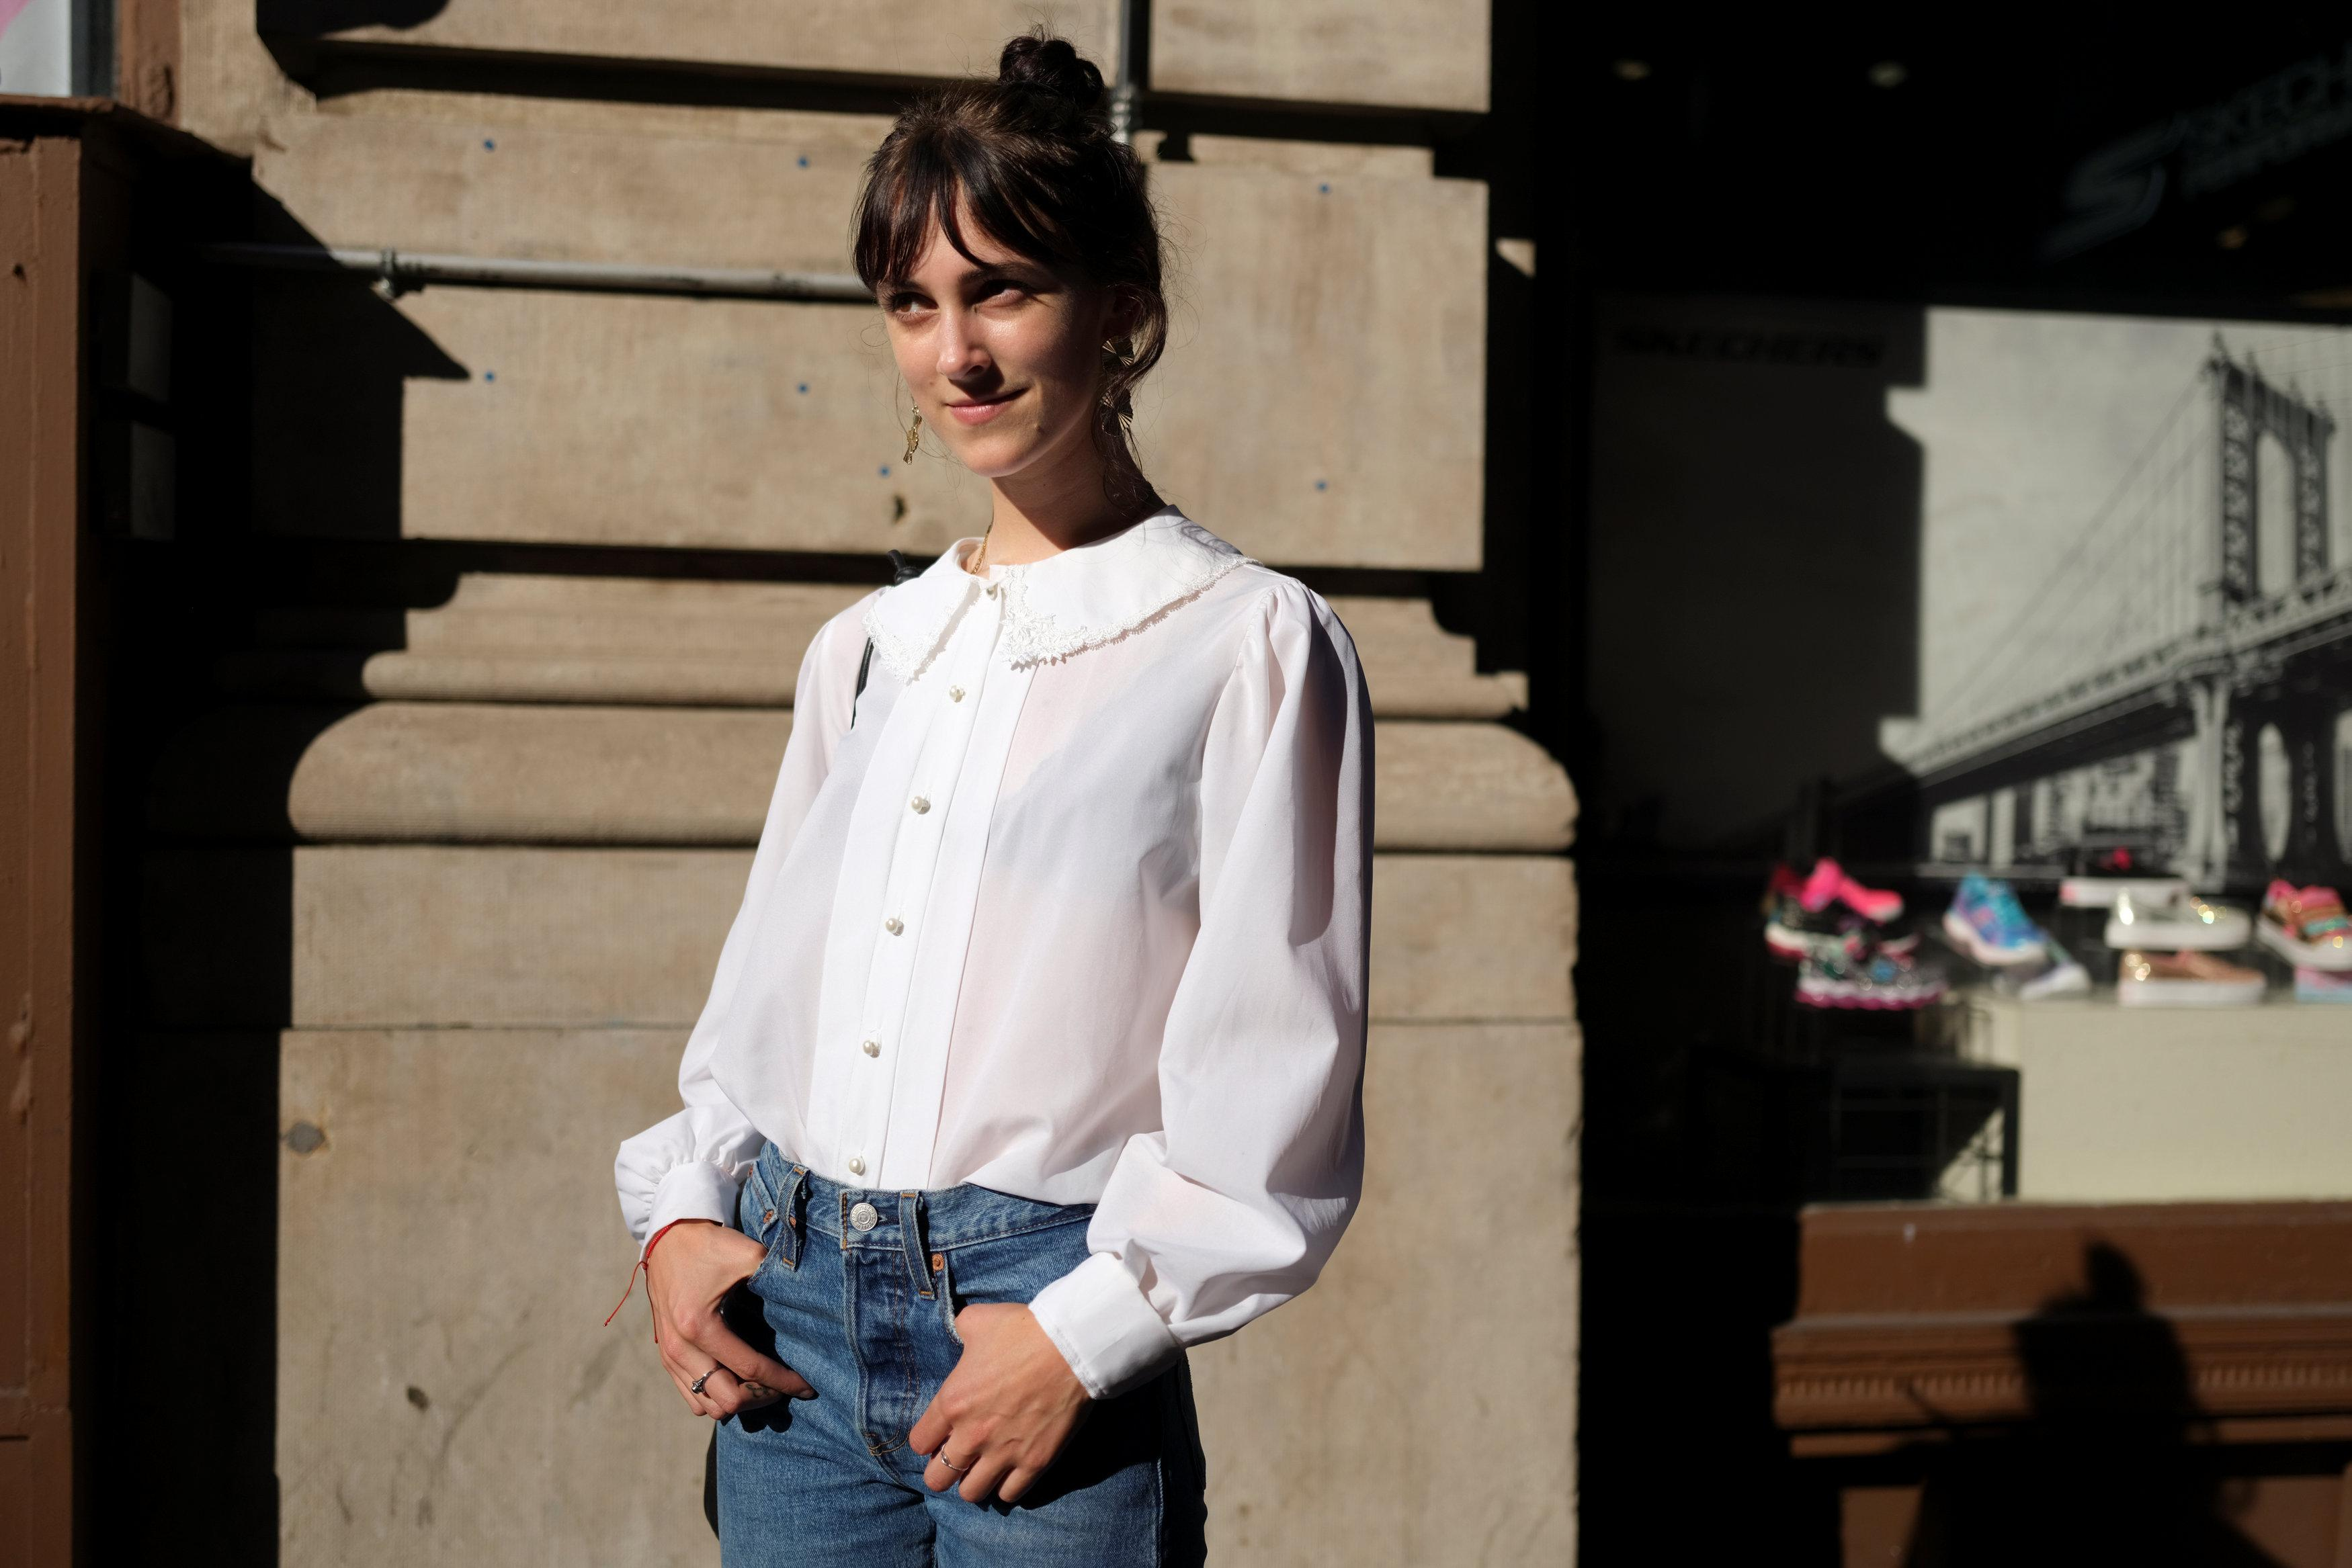 Kat McClanahan, 23, a Merchandising Manager at Aritzia, poses for a portrait in the Manhattan borough of New York, U.S., September 3, 2018.  Caitlin Ochs